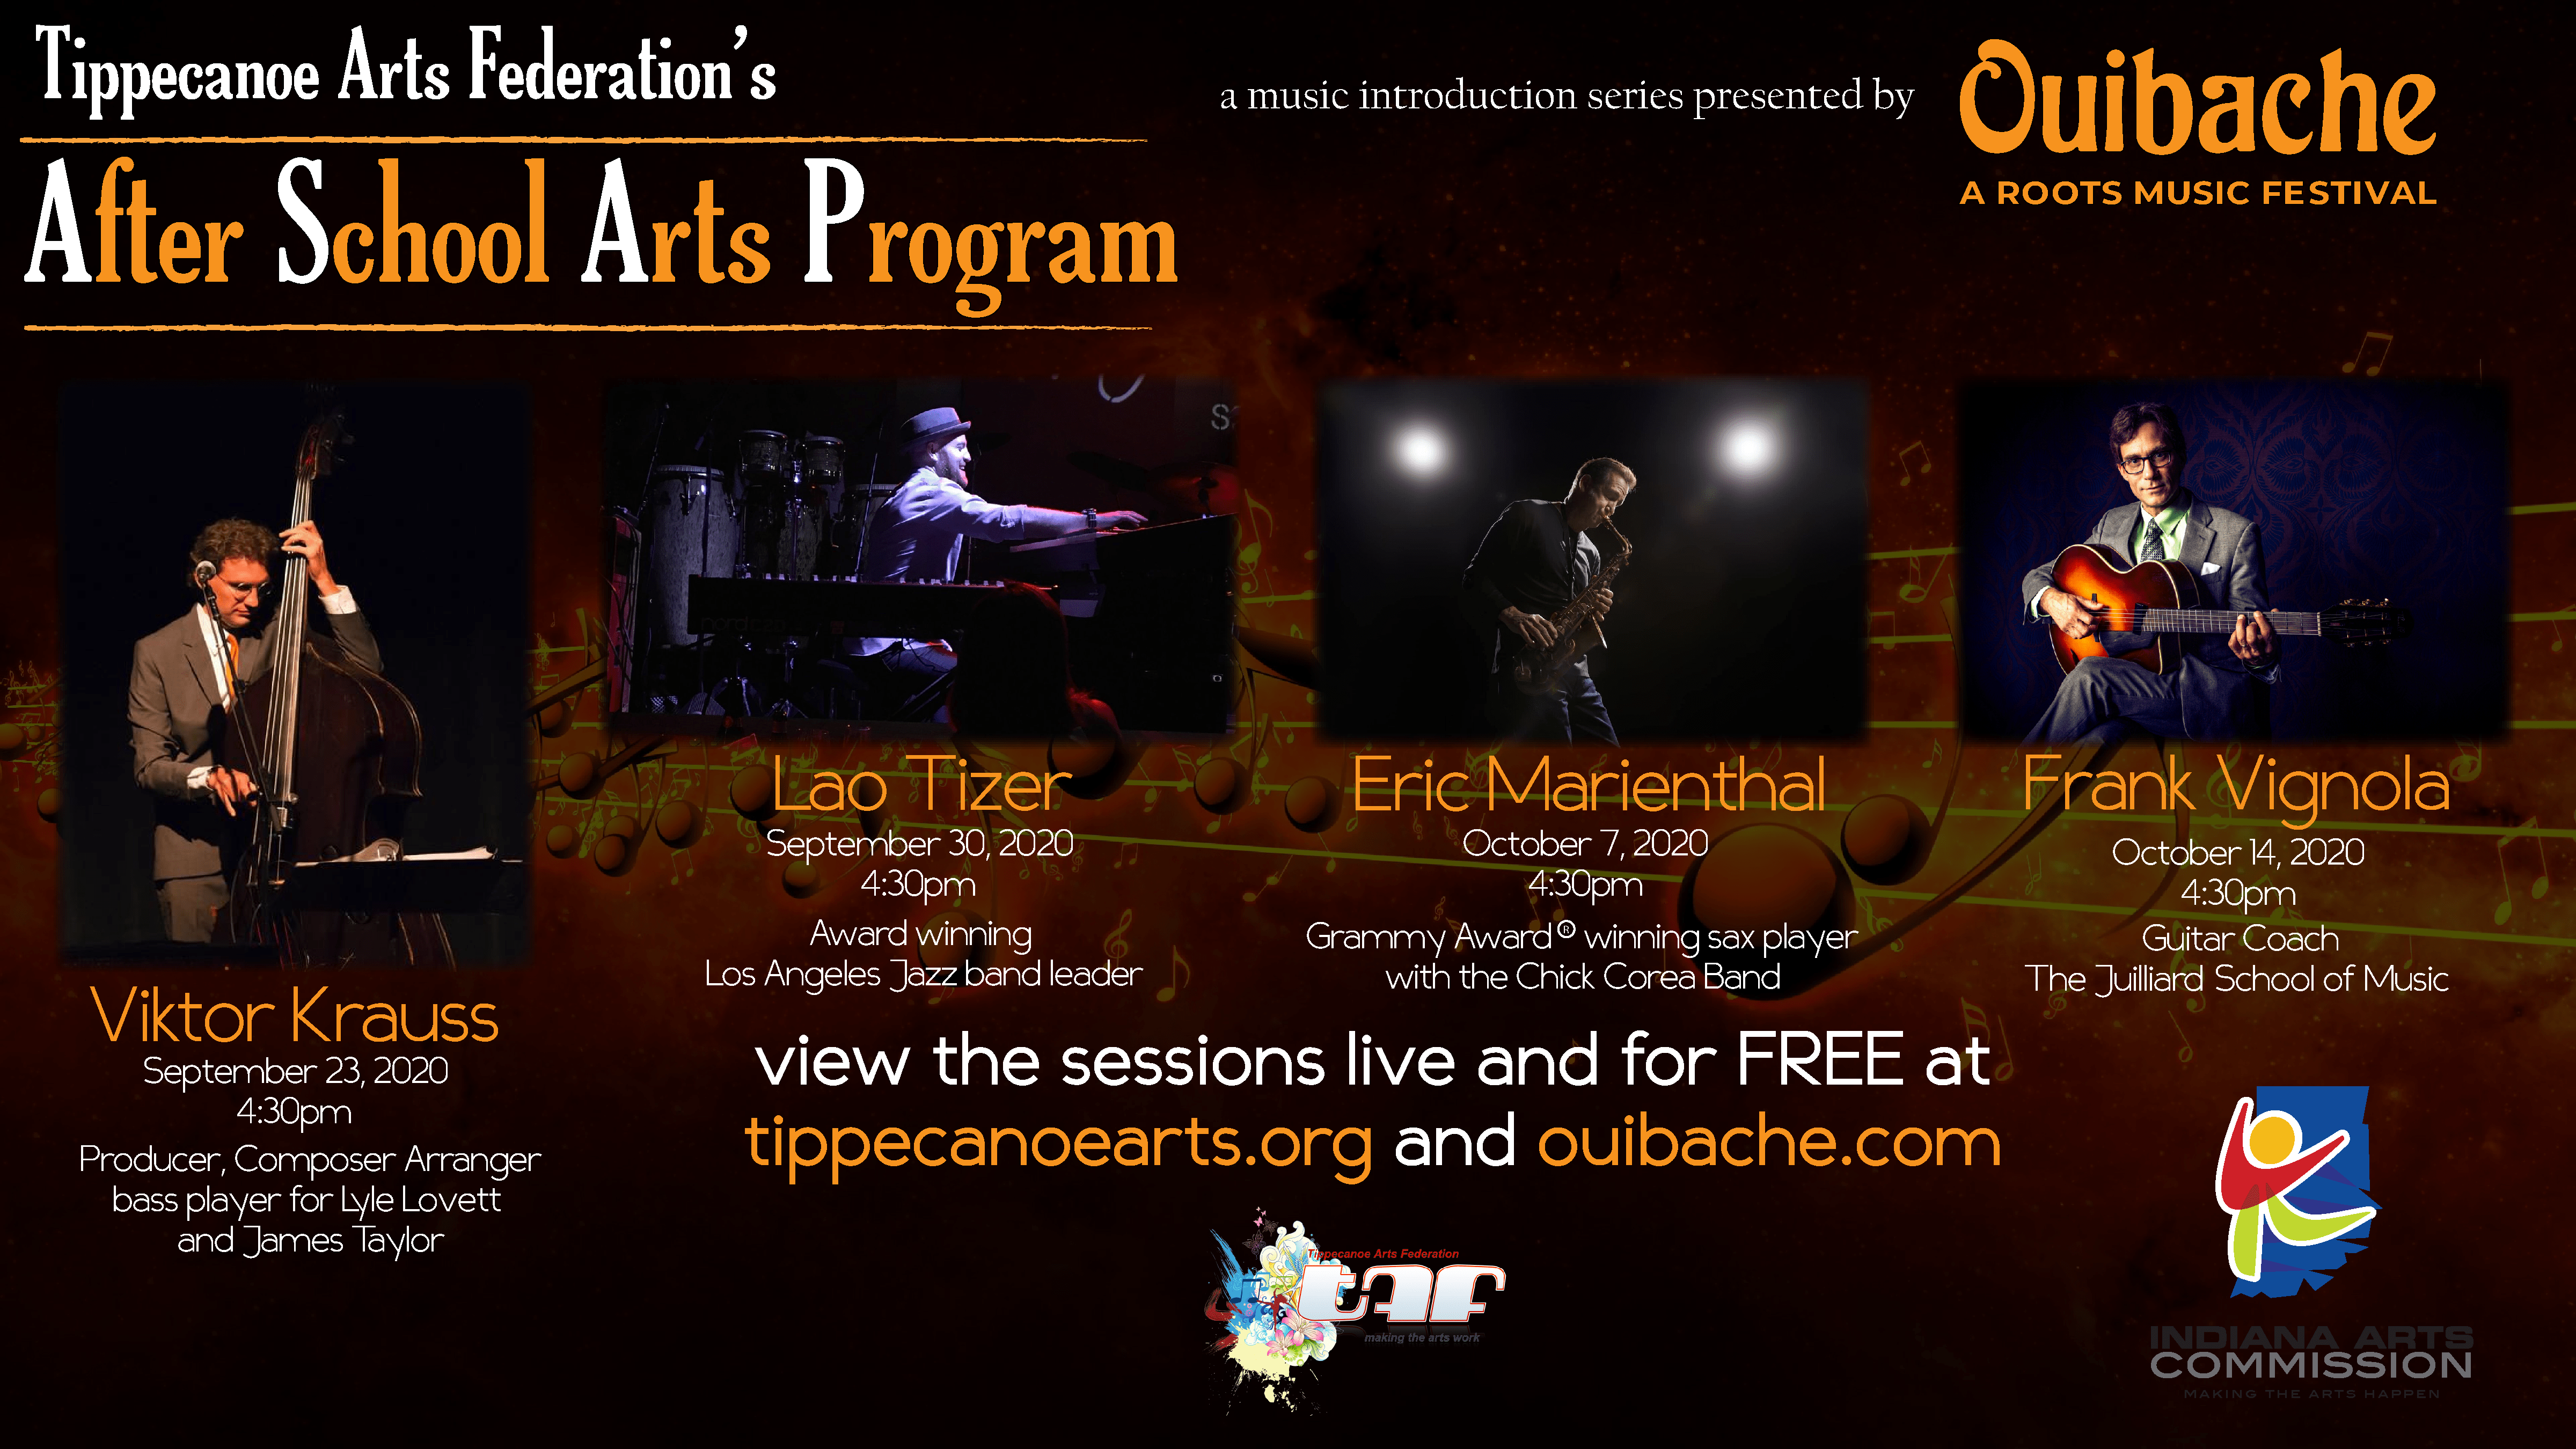 After School Arts Program Advertisement